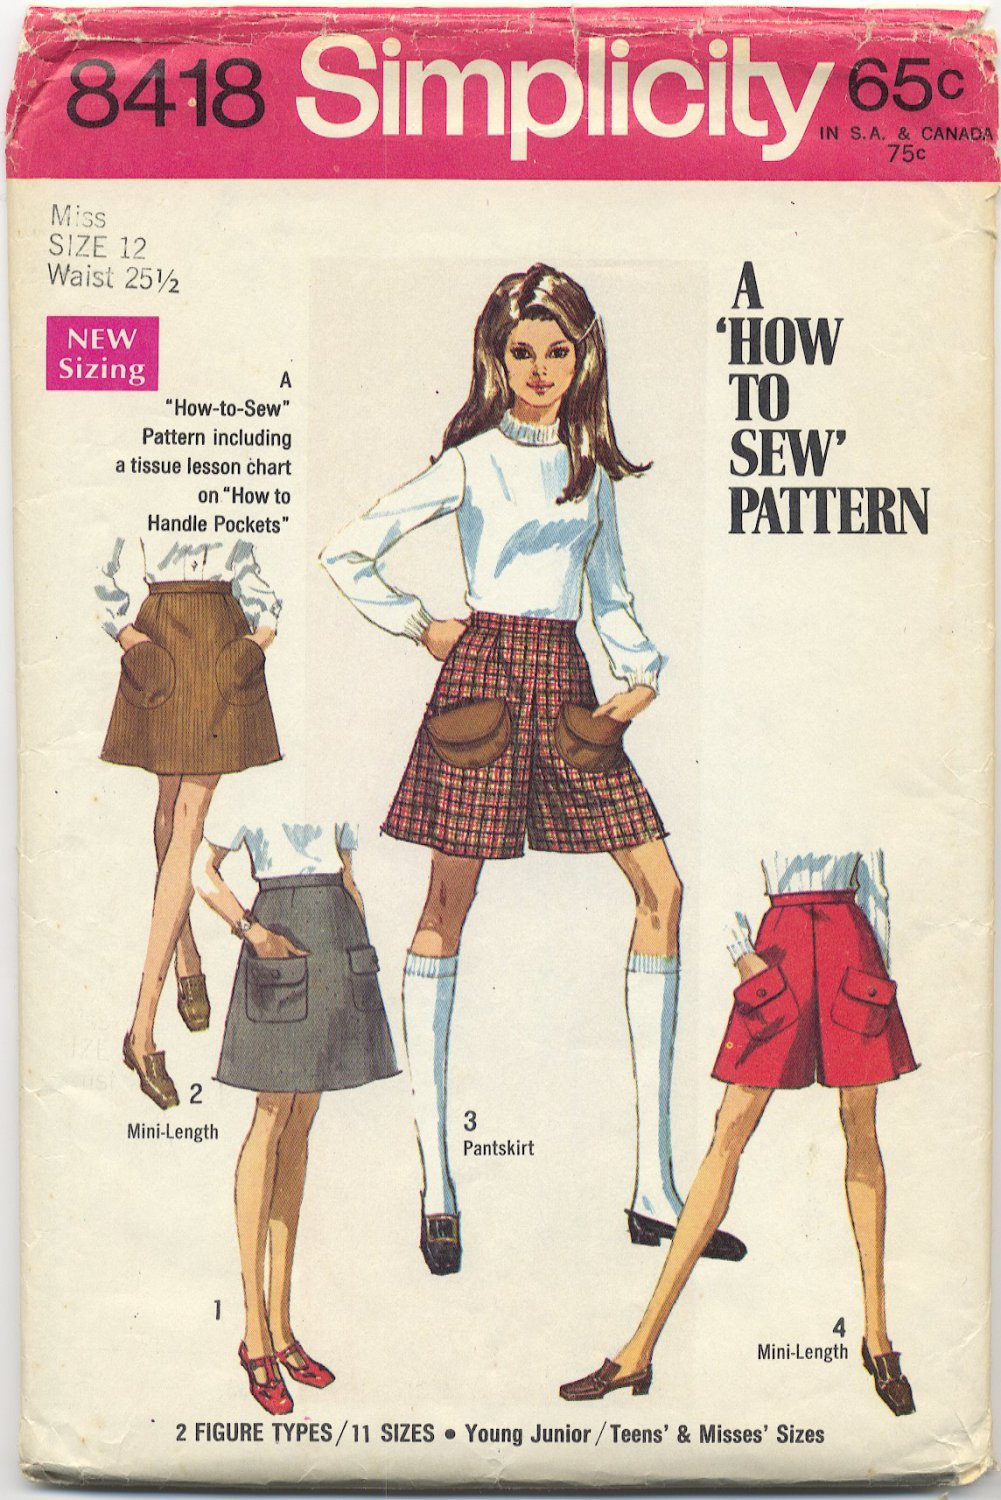 Simplicity 8418 Skirt Two Lengths & Mini-Pantskirt (Cut) Sewing Pattern Miss Size 12 1970s Culottes